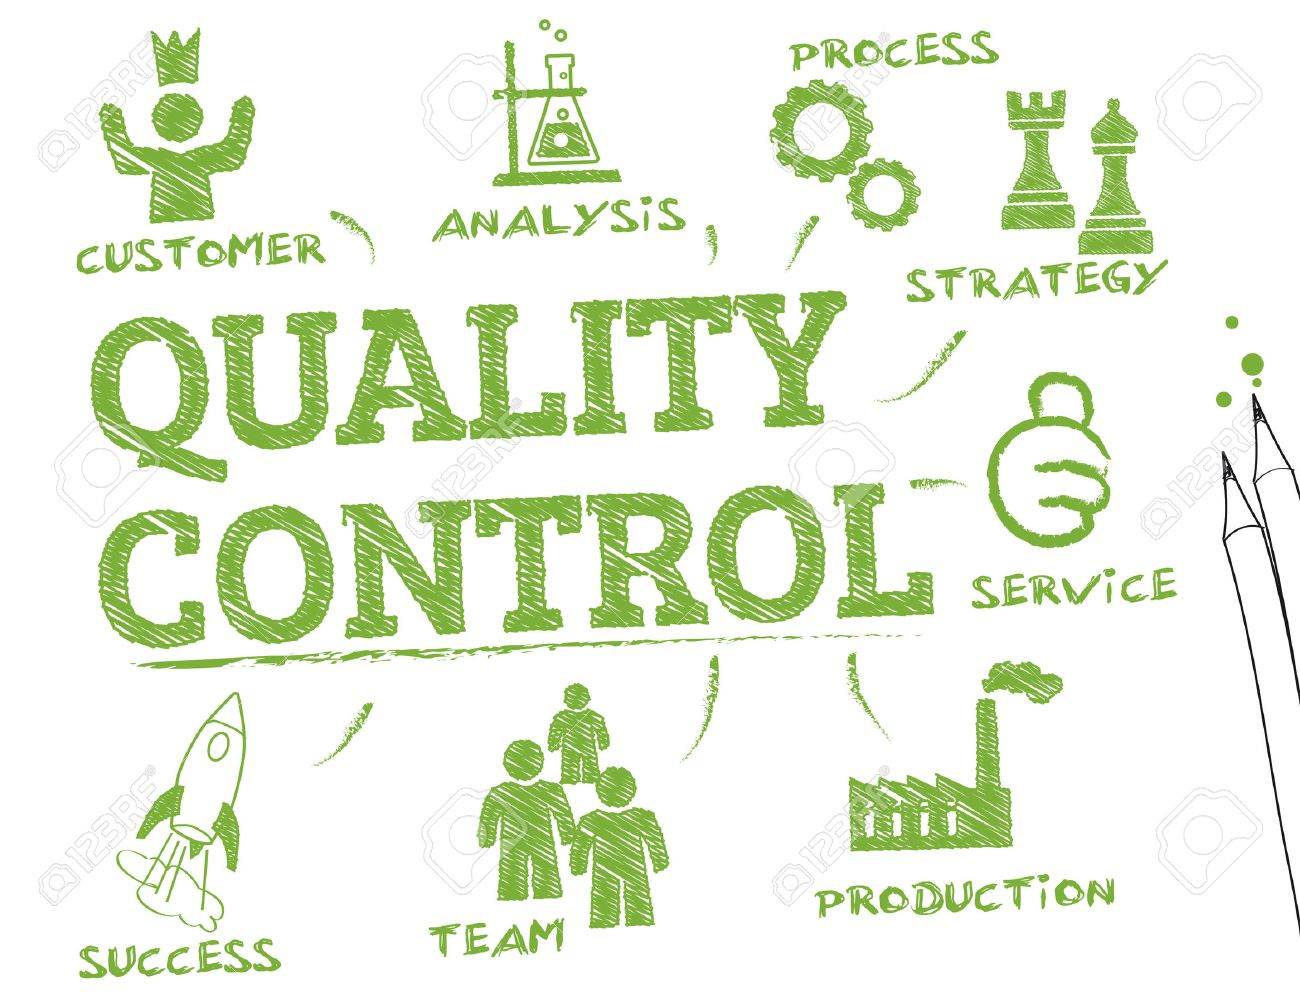 quality control chart with keywords and icons royalty free cliparts